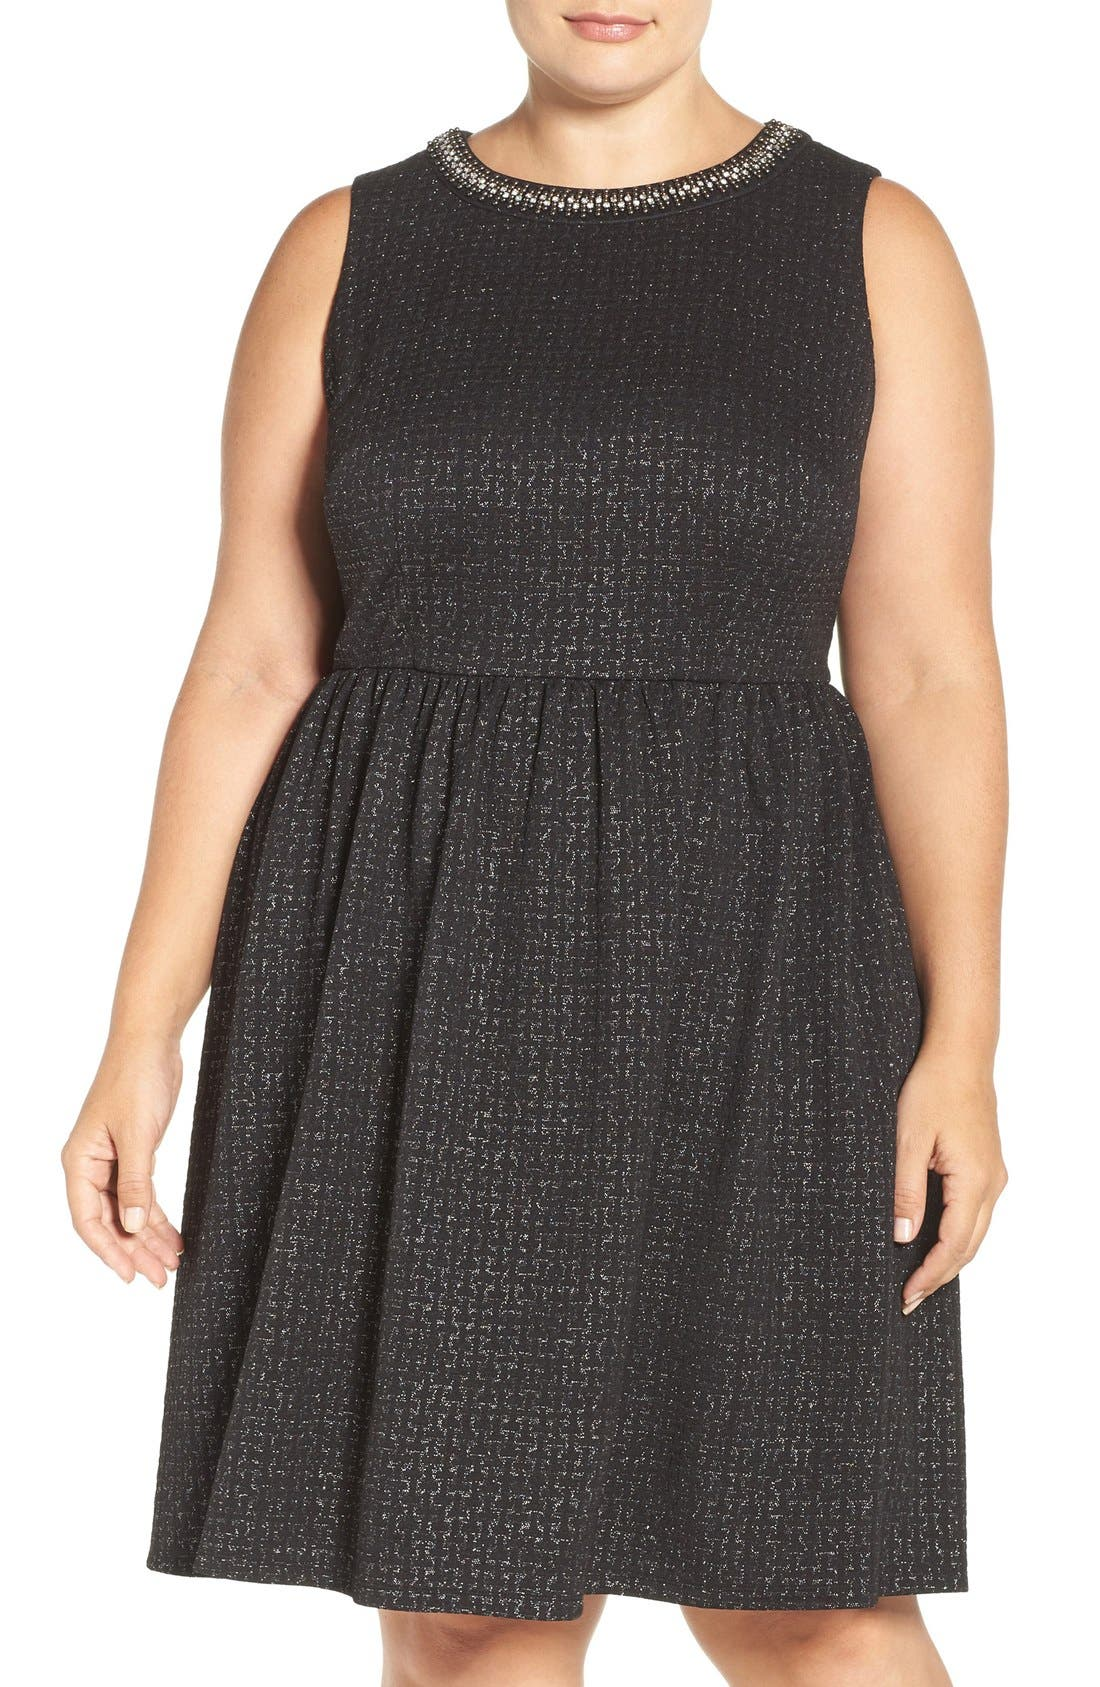 Embellished Stretch Fit & Flare Dress,                             Main thumbnail 1, color,                             004